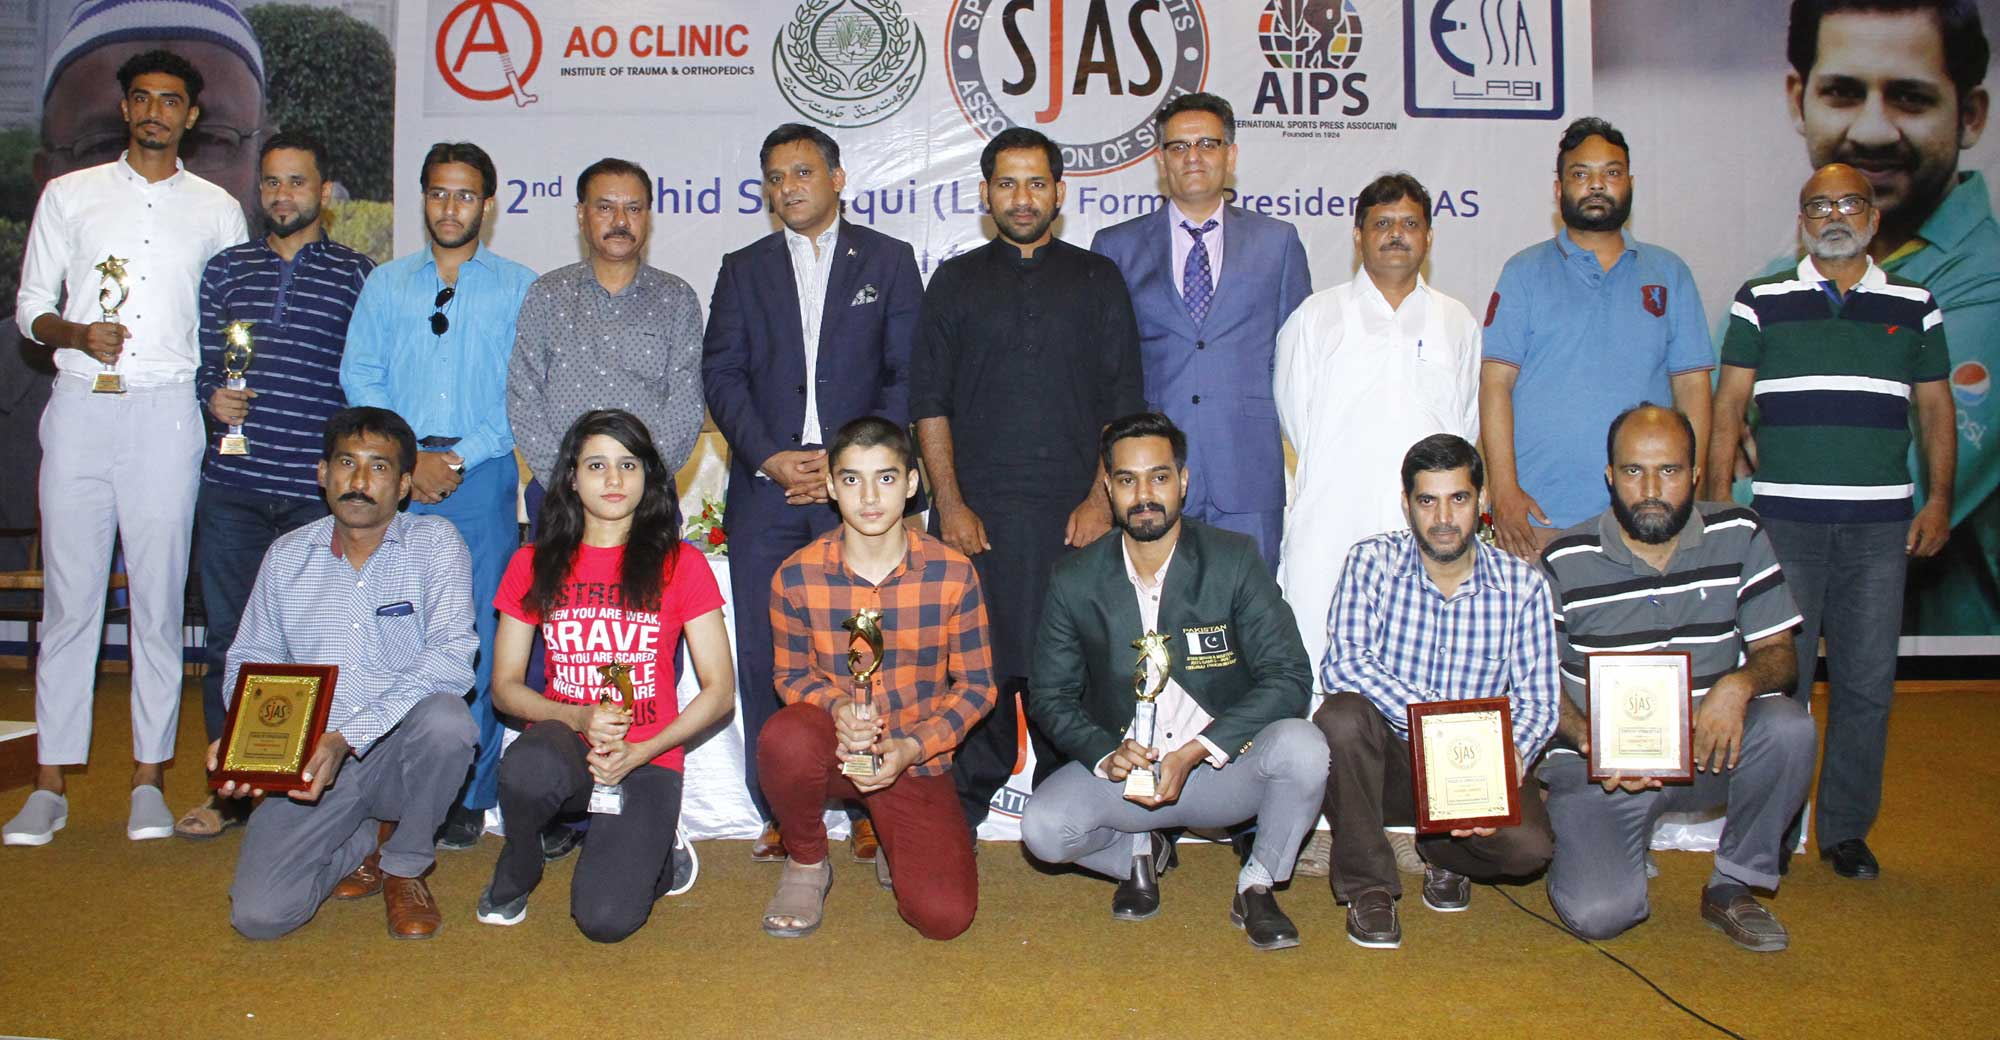 SJAS confers gold medal on Sarfraz